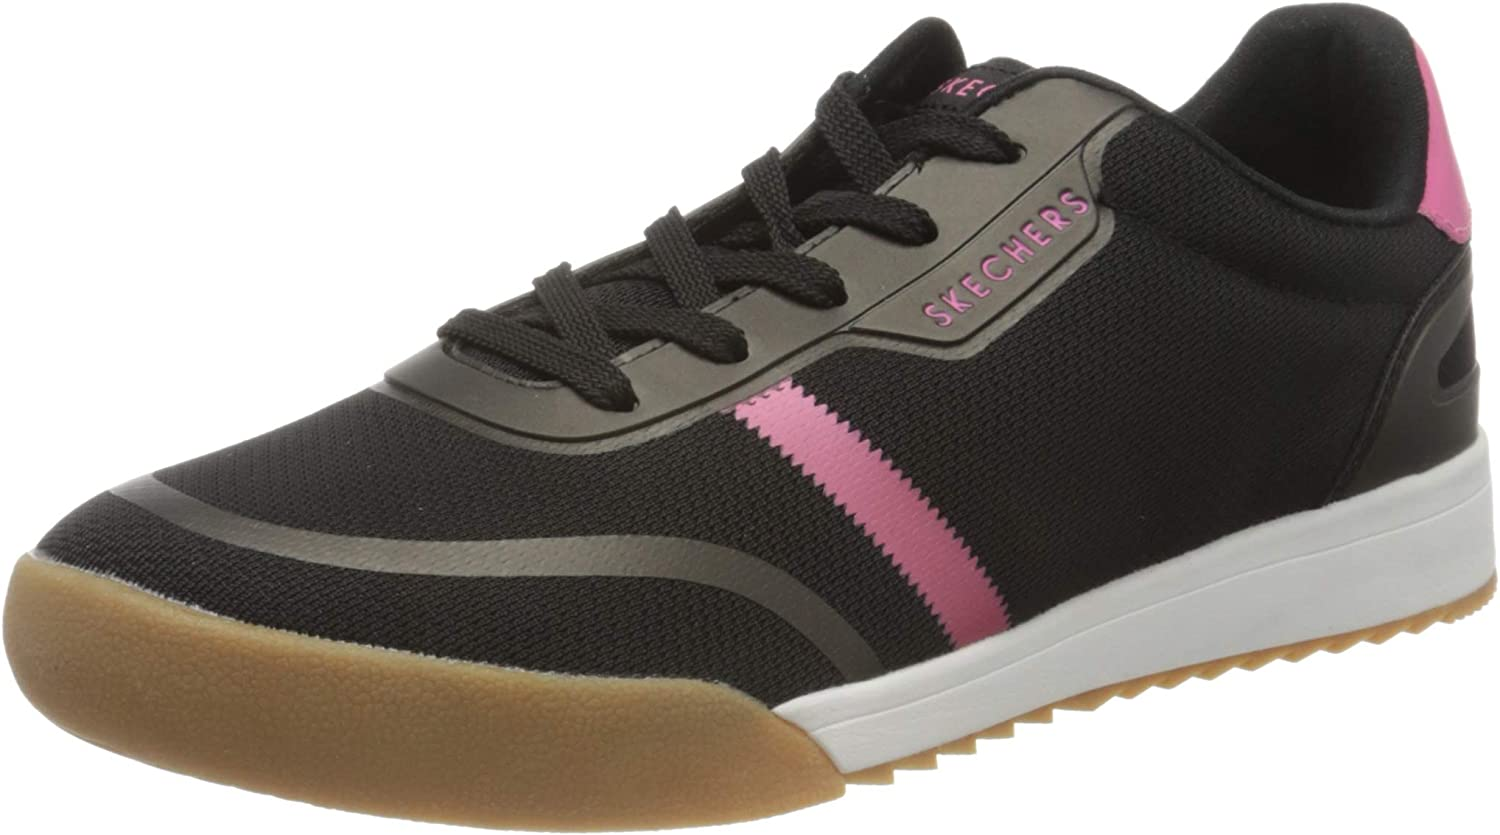 notificación Leia adherirse  Skechers Women's Zinger 2.0 Trainers: Amazon.co.uk: Shoes & Bags